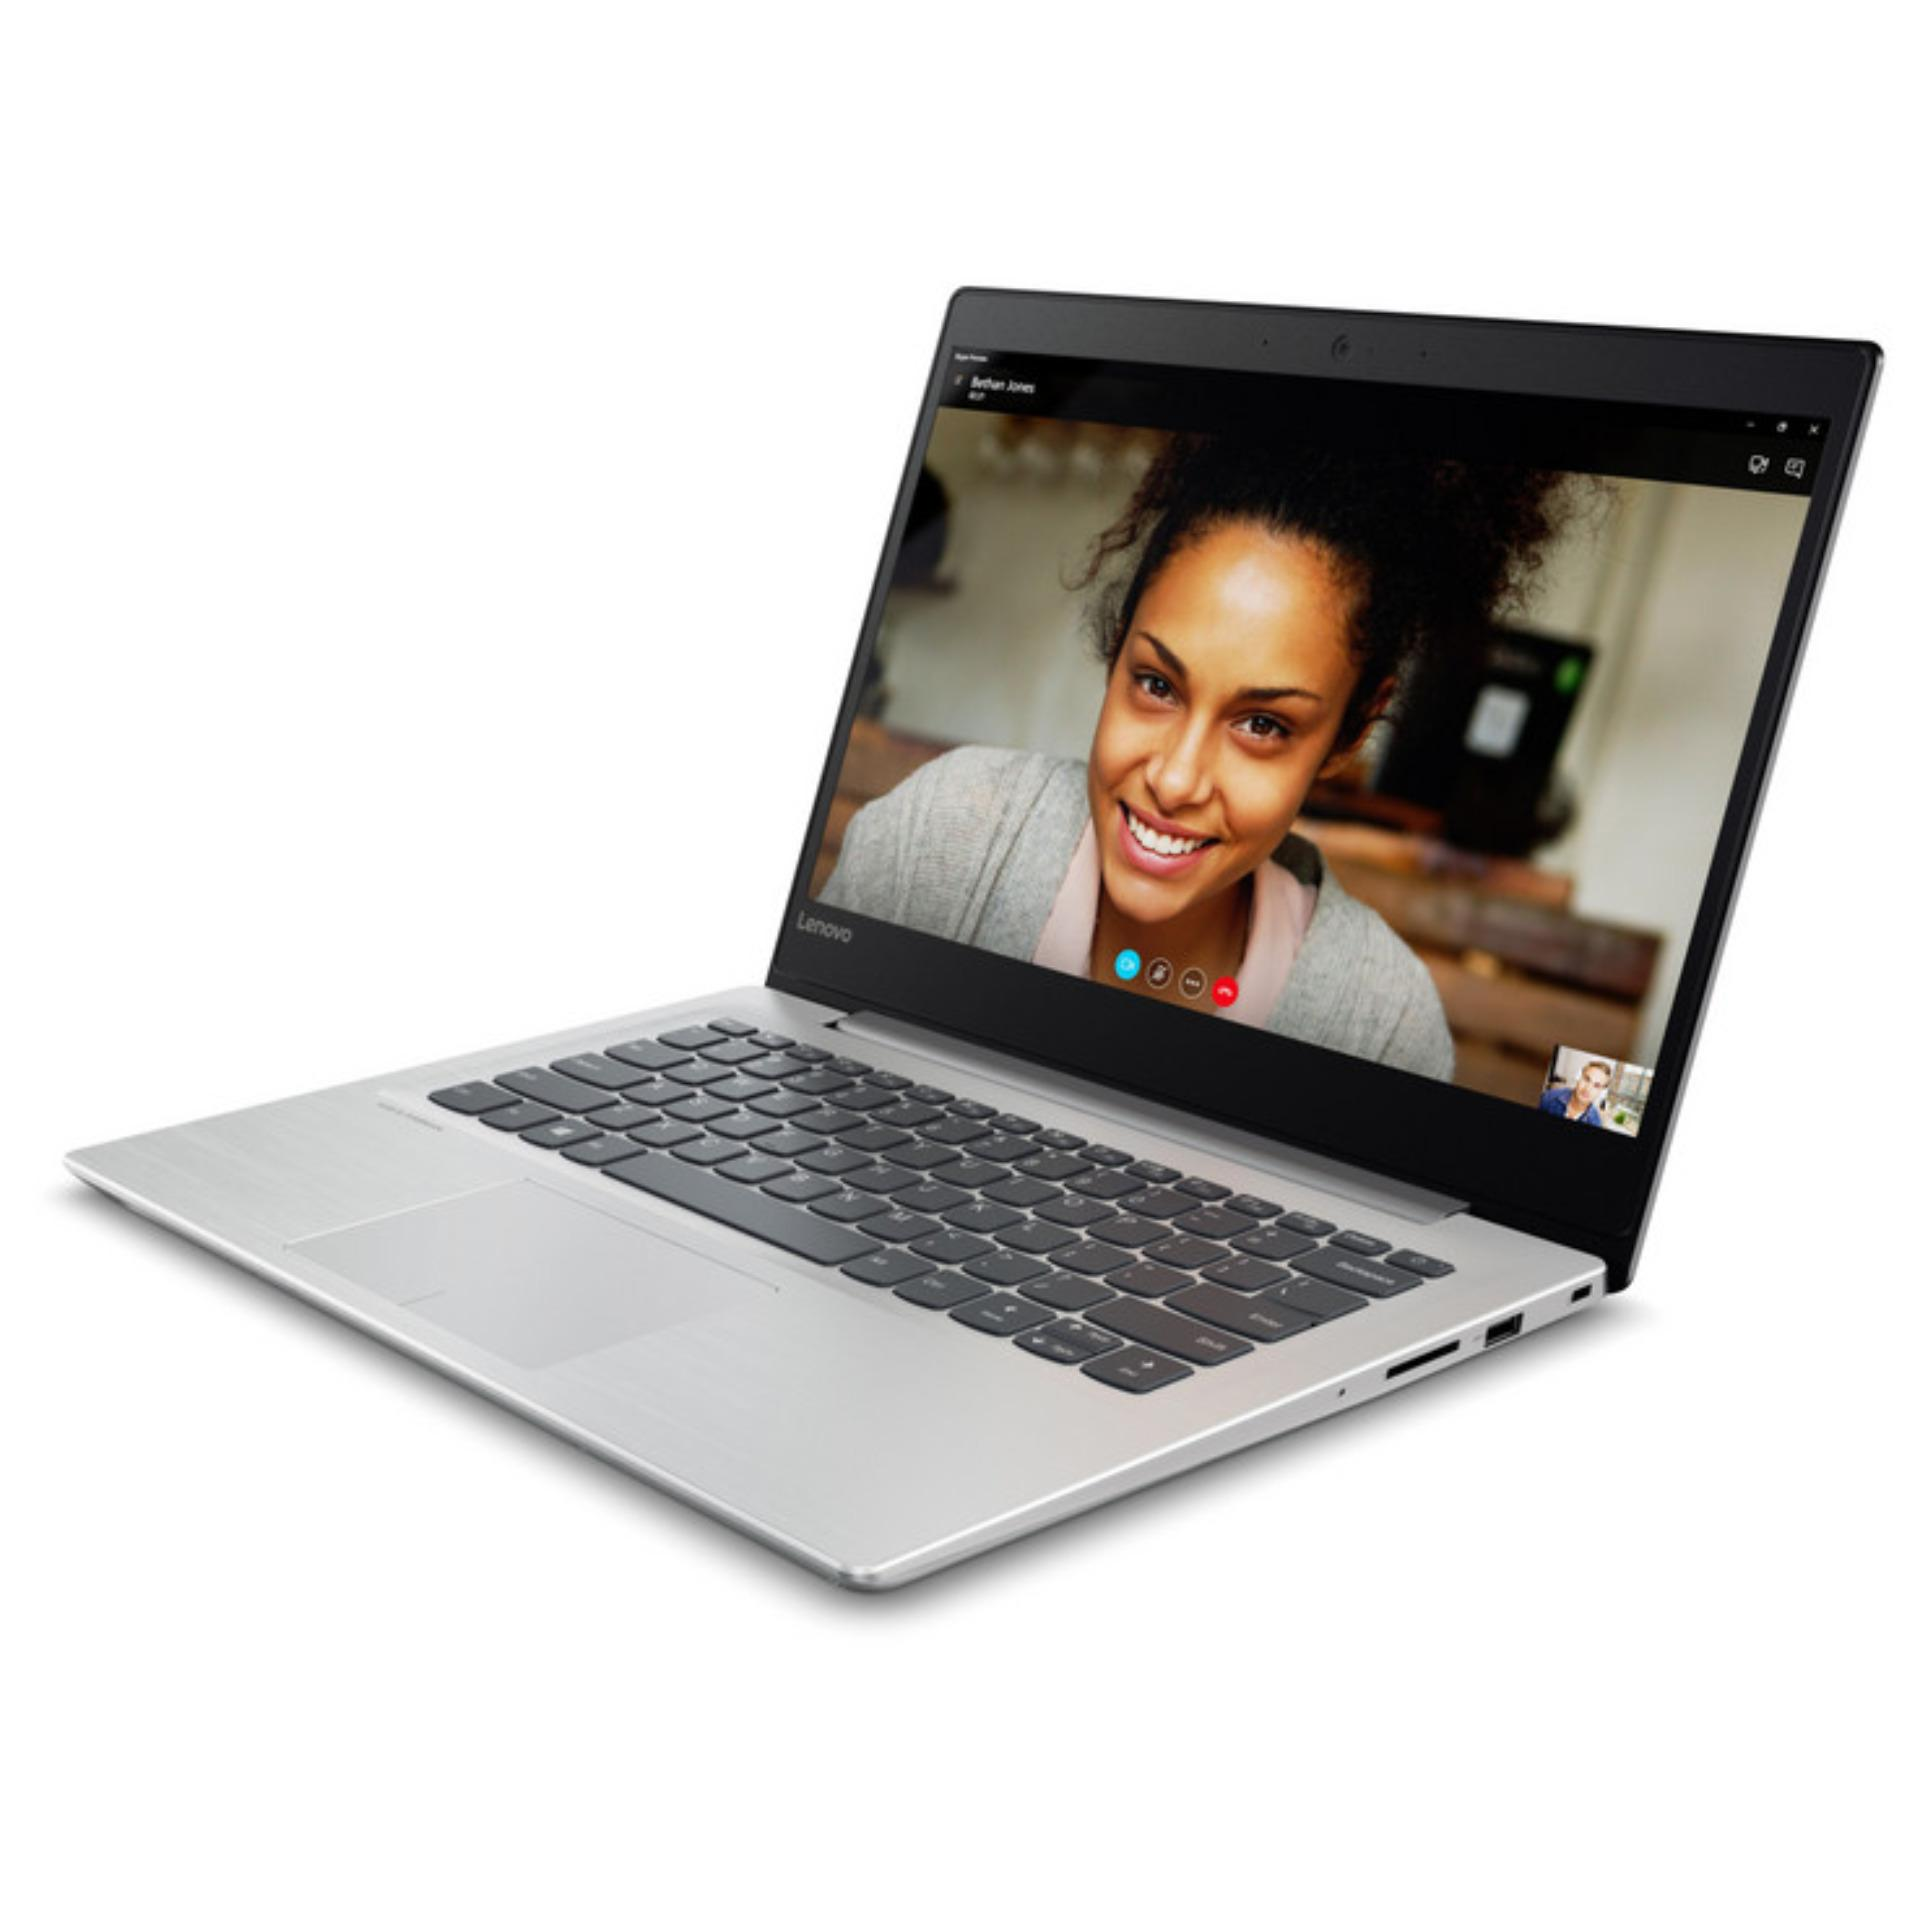 Lenovo Ideapad 320S-14IKBR-4YID Core i5-8250U-4GB+1TB-GF920MX 2GB14-inch-Windows10